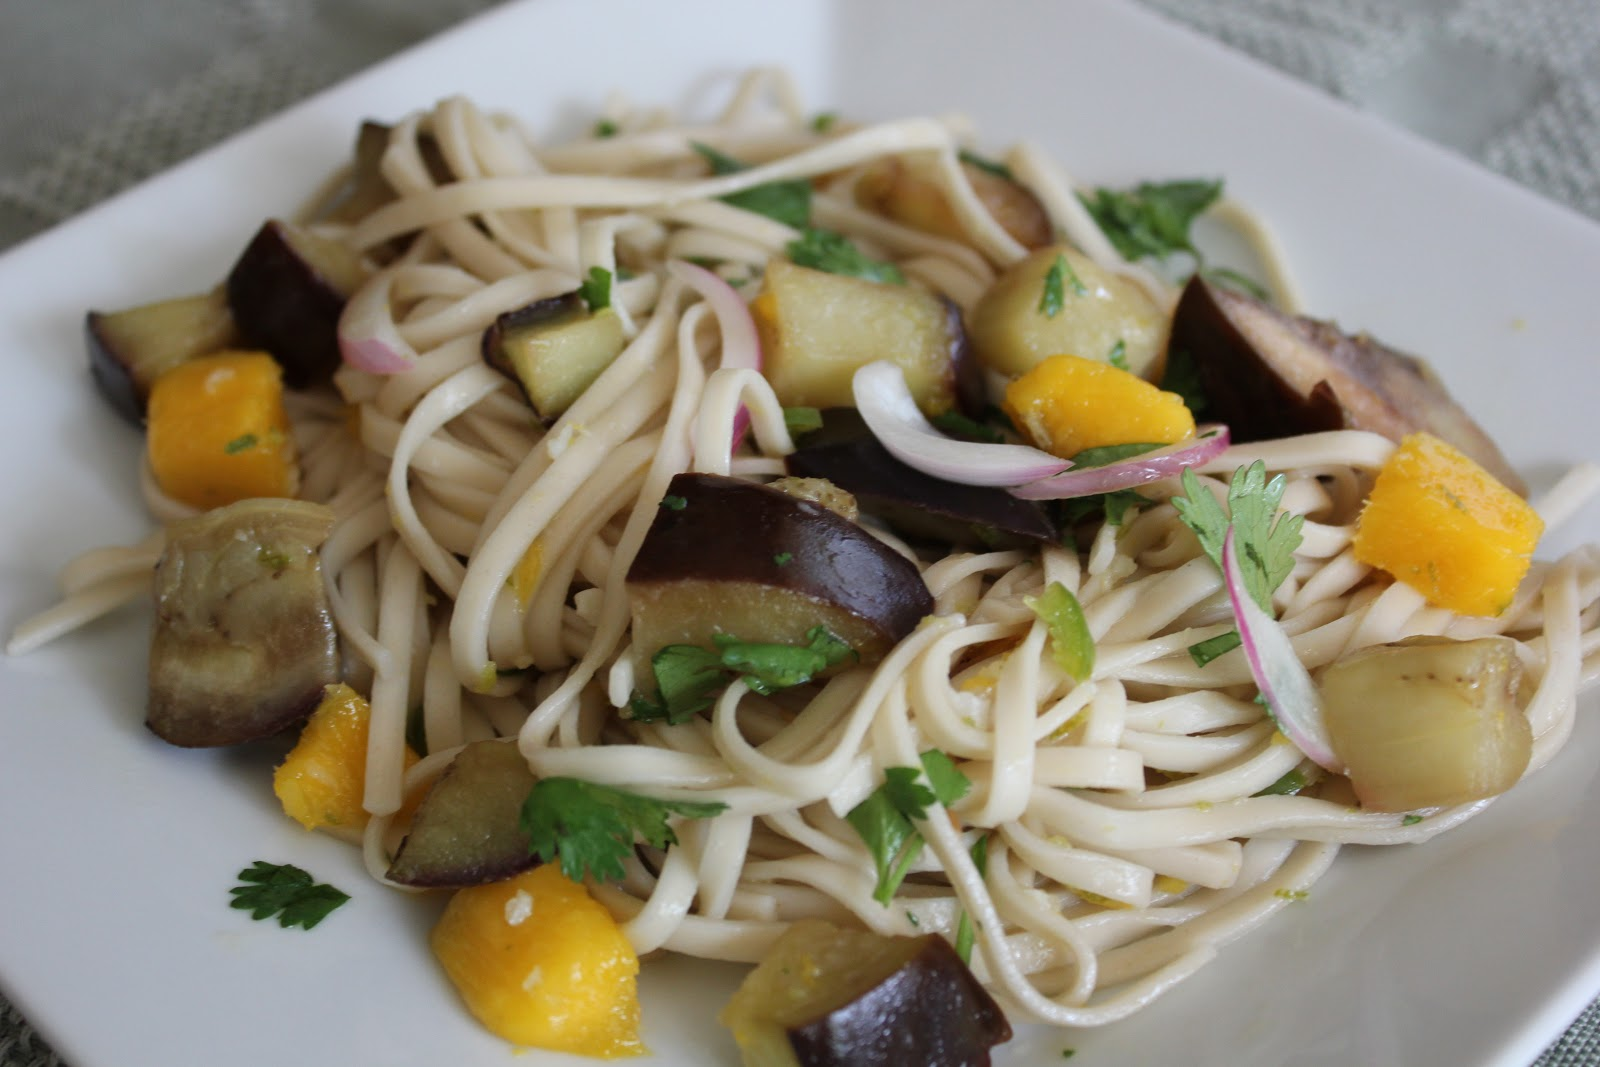 THE BUSY MOM CAFE: Ottolenghi's Soba Noodles with Eggplant and Mango